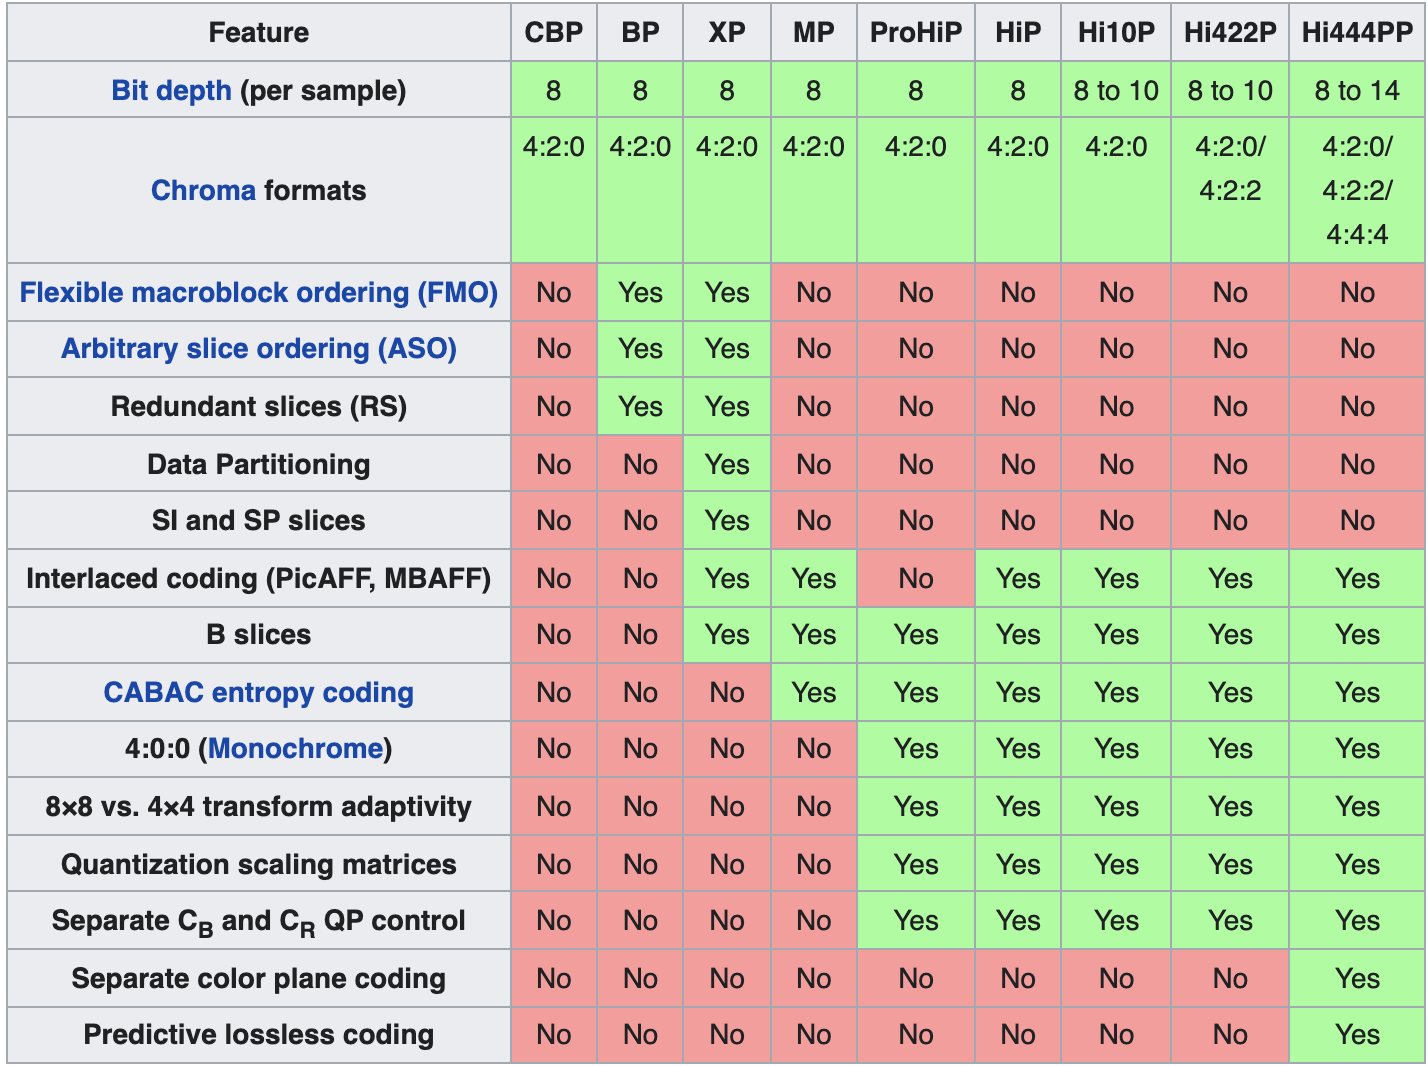 Table 5. The most commonly used profiles are baseline (BP), main (MP), and high (HiP).